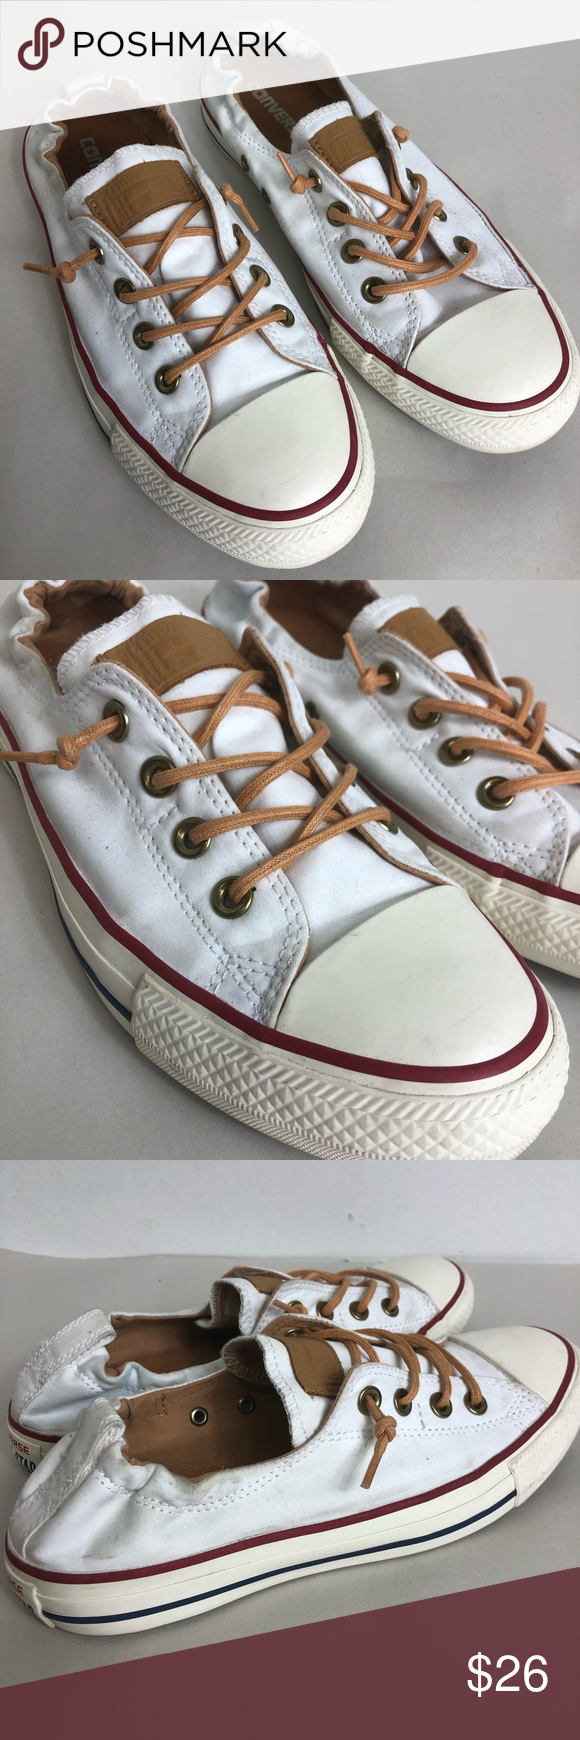 Converse All Stars White Excellent